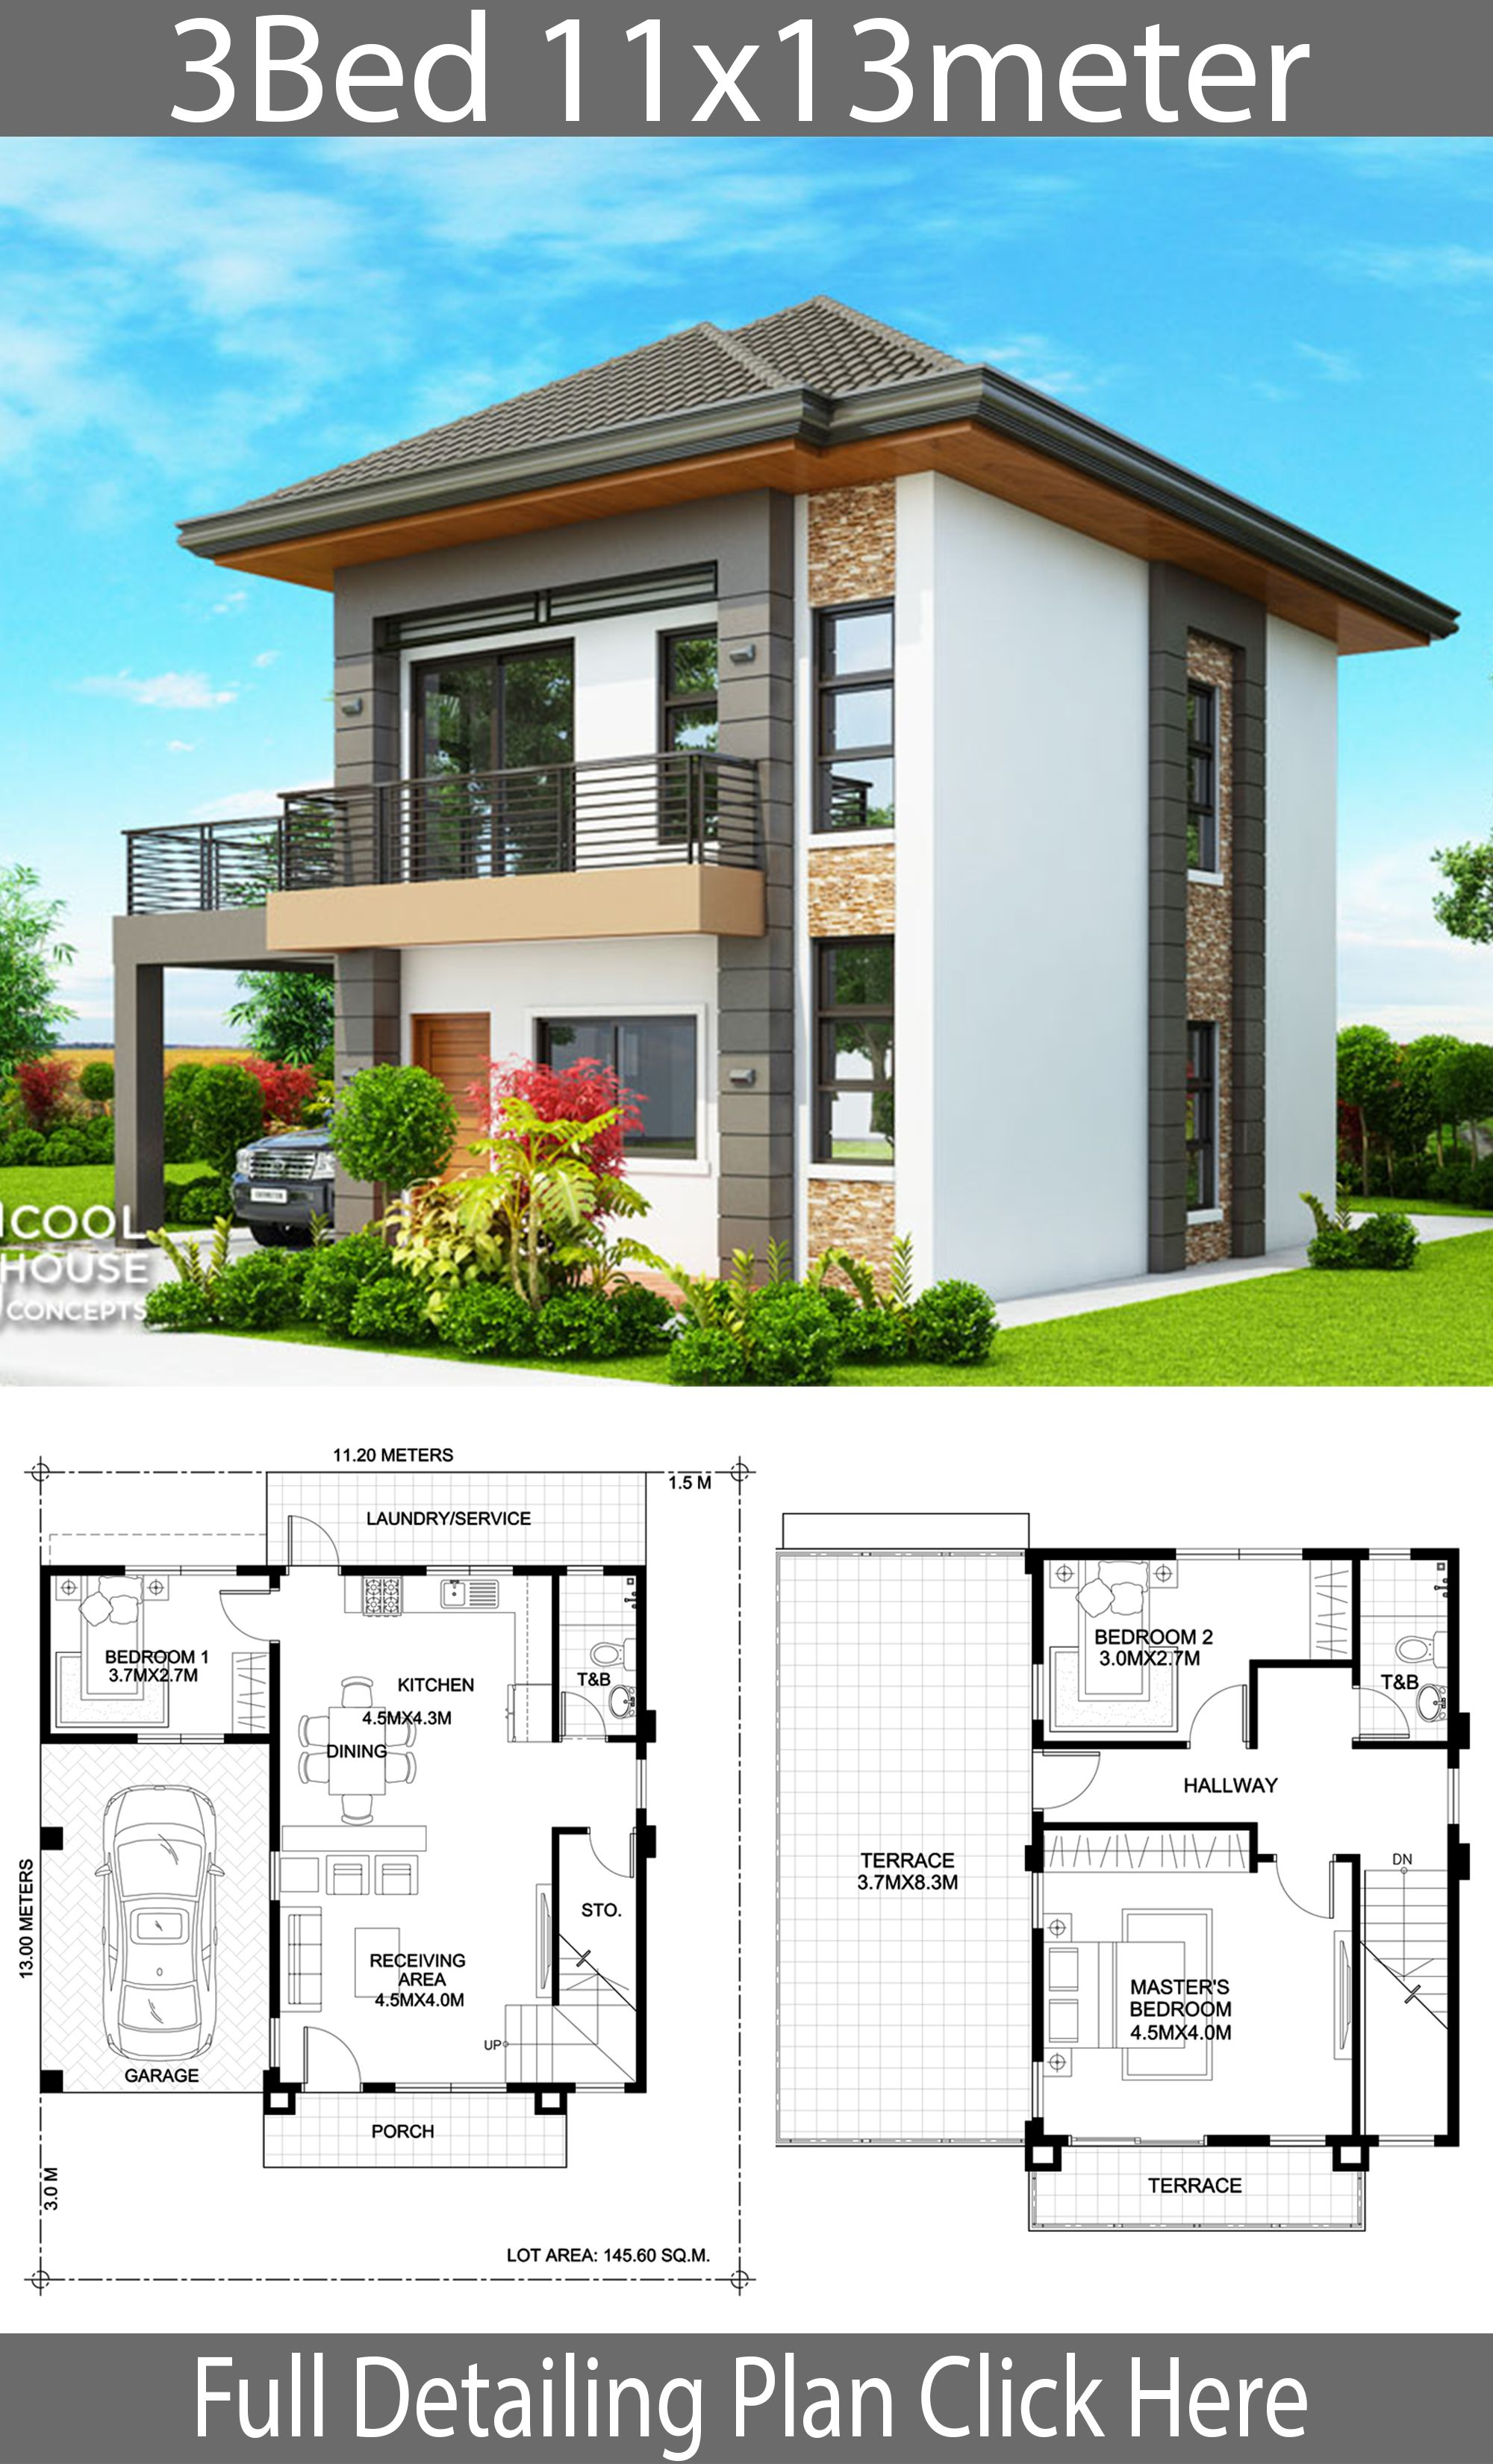 Pin By Rguterres On Samphoas House Plan Philippines House Design House Construction Plan Two Story House Design